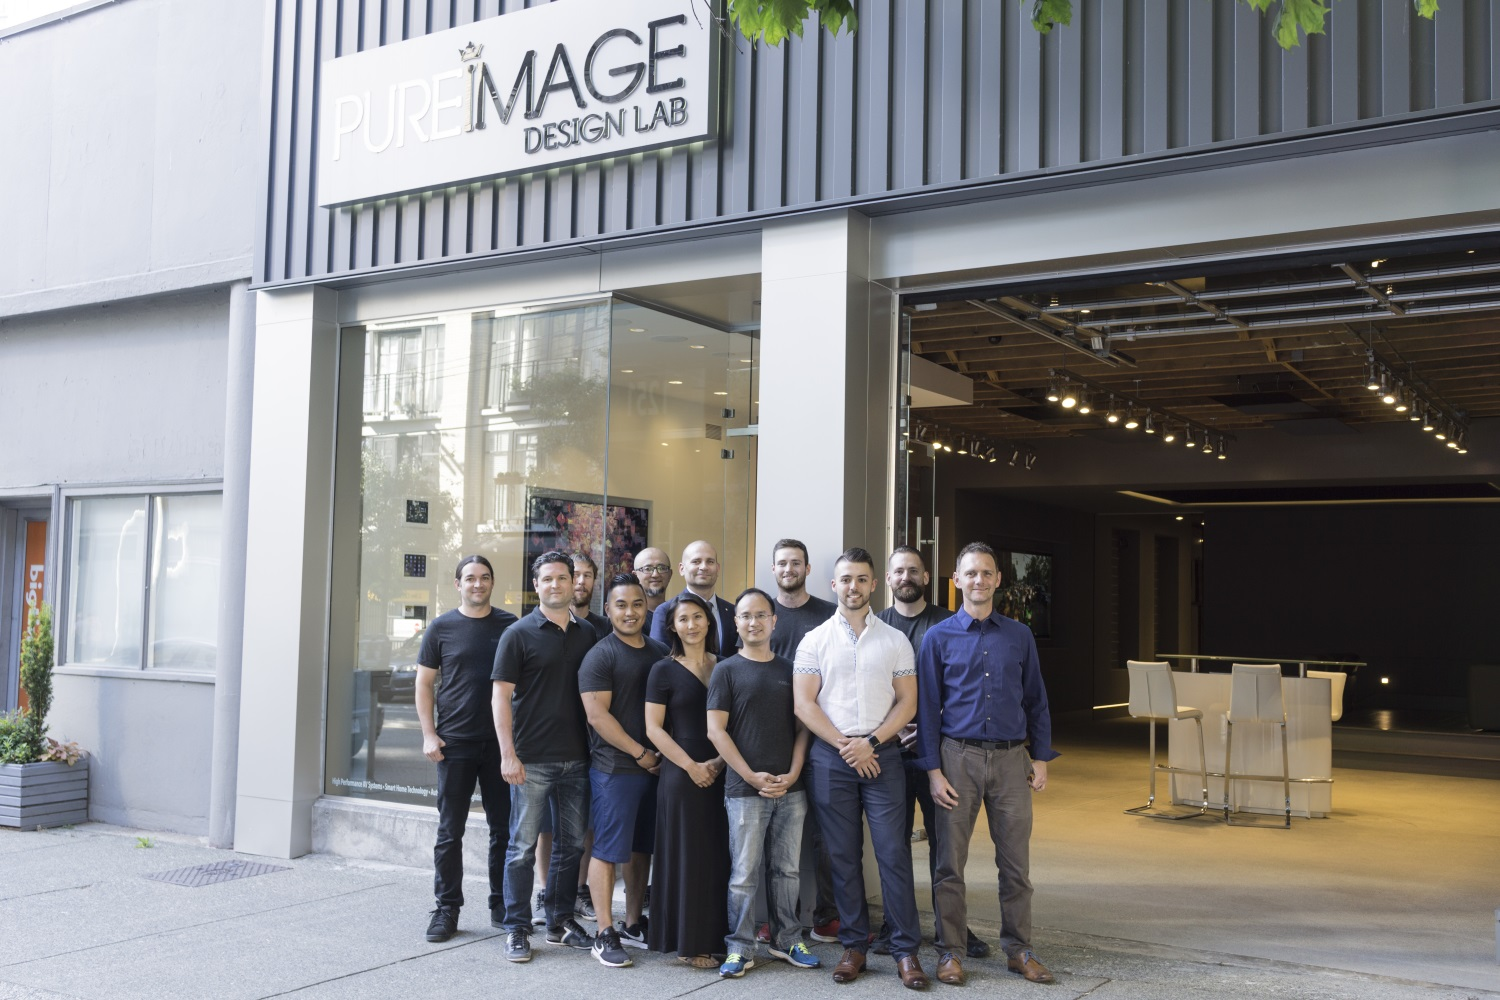 PureImage Vancouver's team photo showing specialists in home theatre, home automation and technology projects.